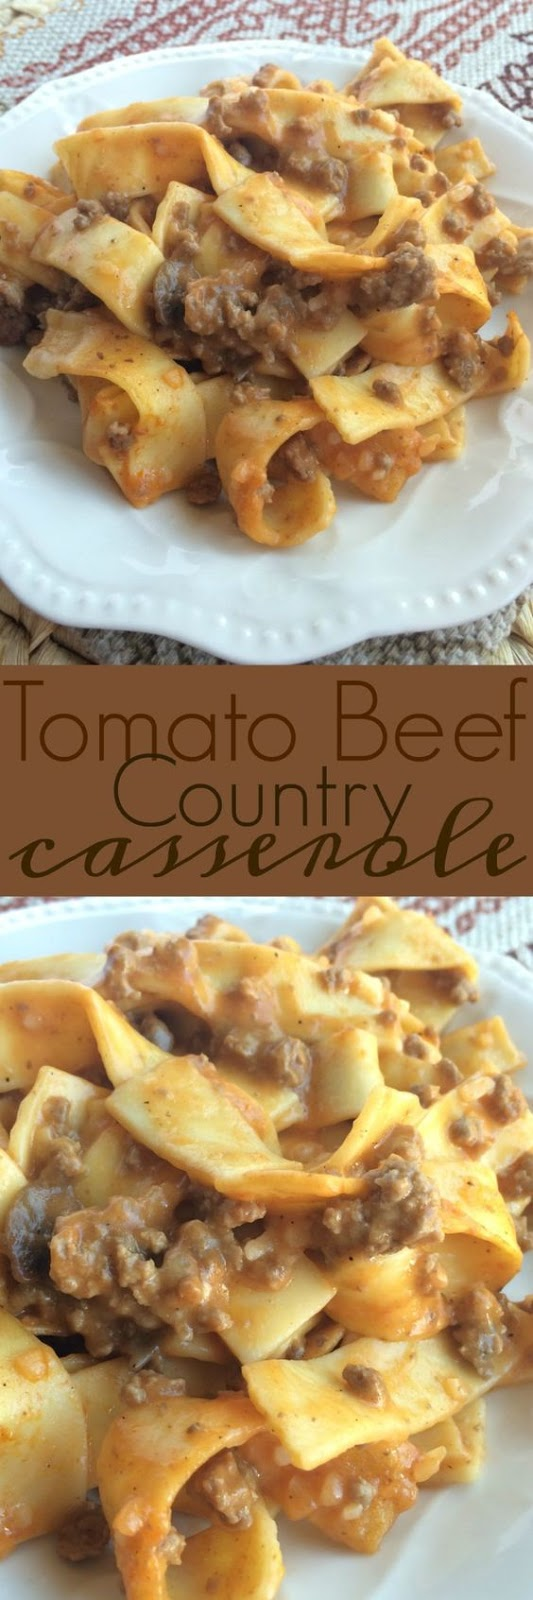 Ground Beef Country Casserole #DINNER #CASSEROLE #GROUNDBEEF